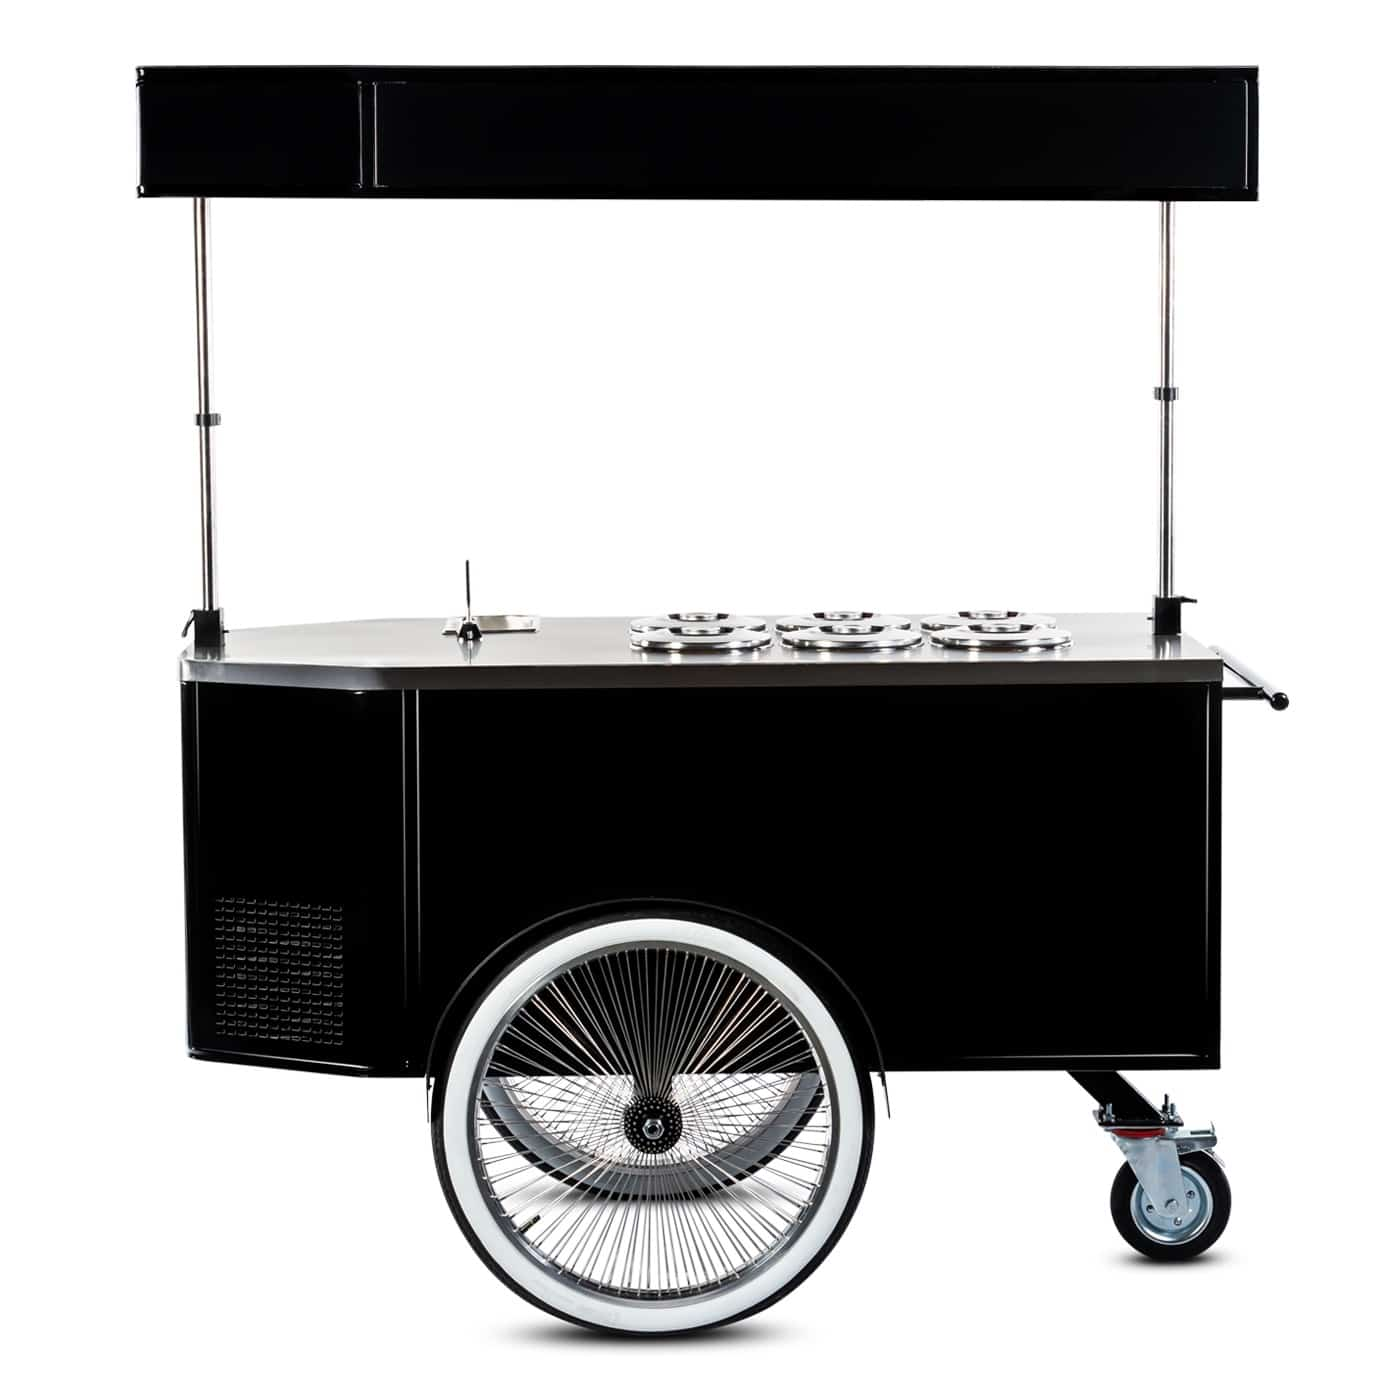 Pozzetti gelato cart manufactured by Bizz On Wheels